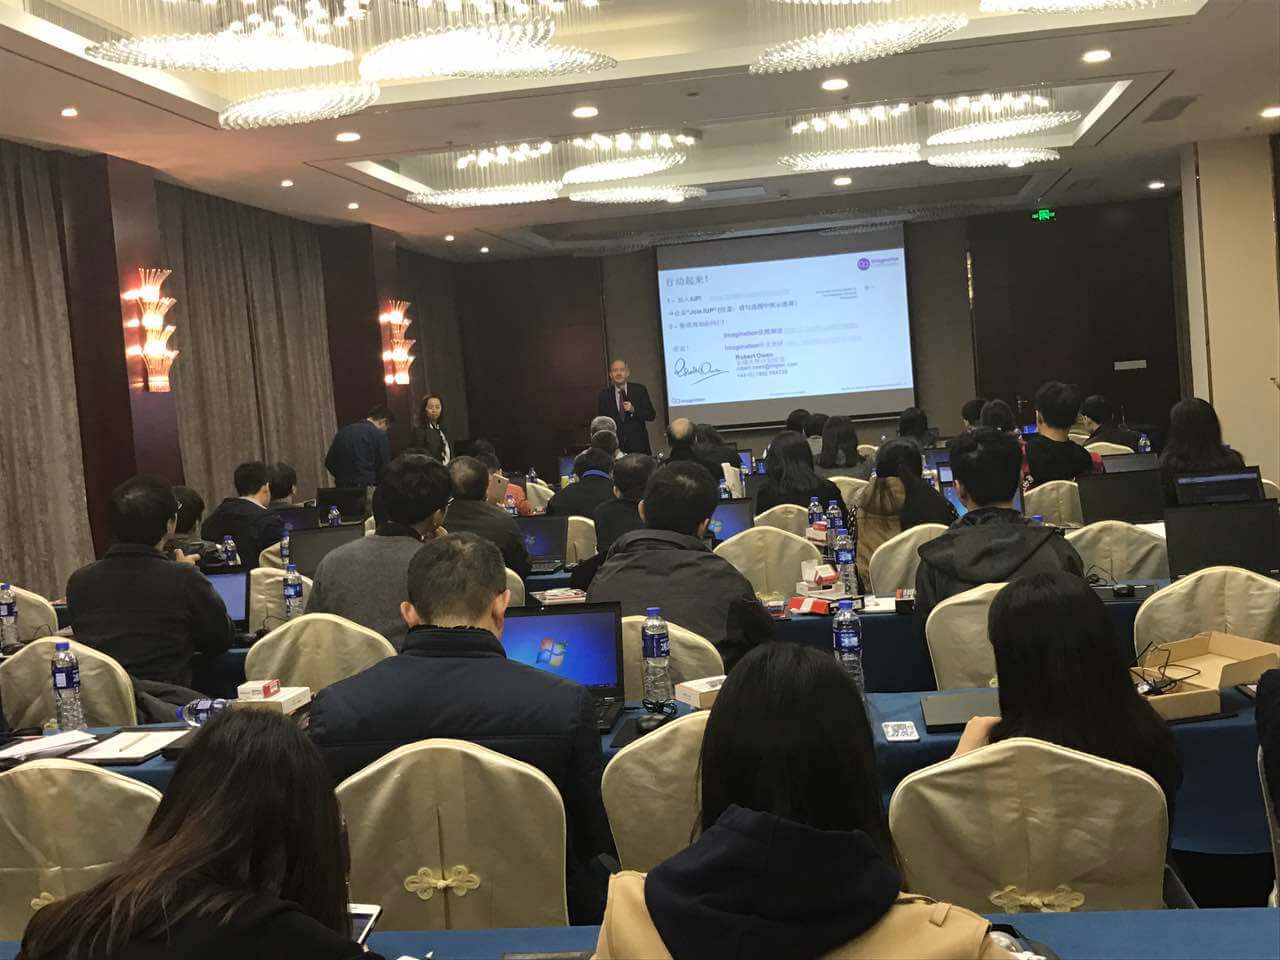 Robert Owen introducing the Imagination University Programme at a Microchip Workshop, Nanjing, China. Nov. 2016